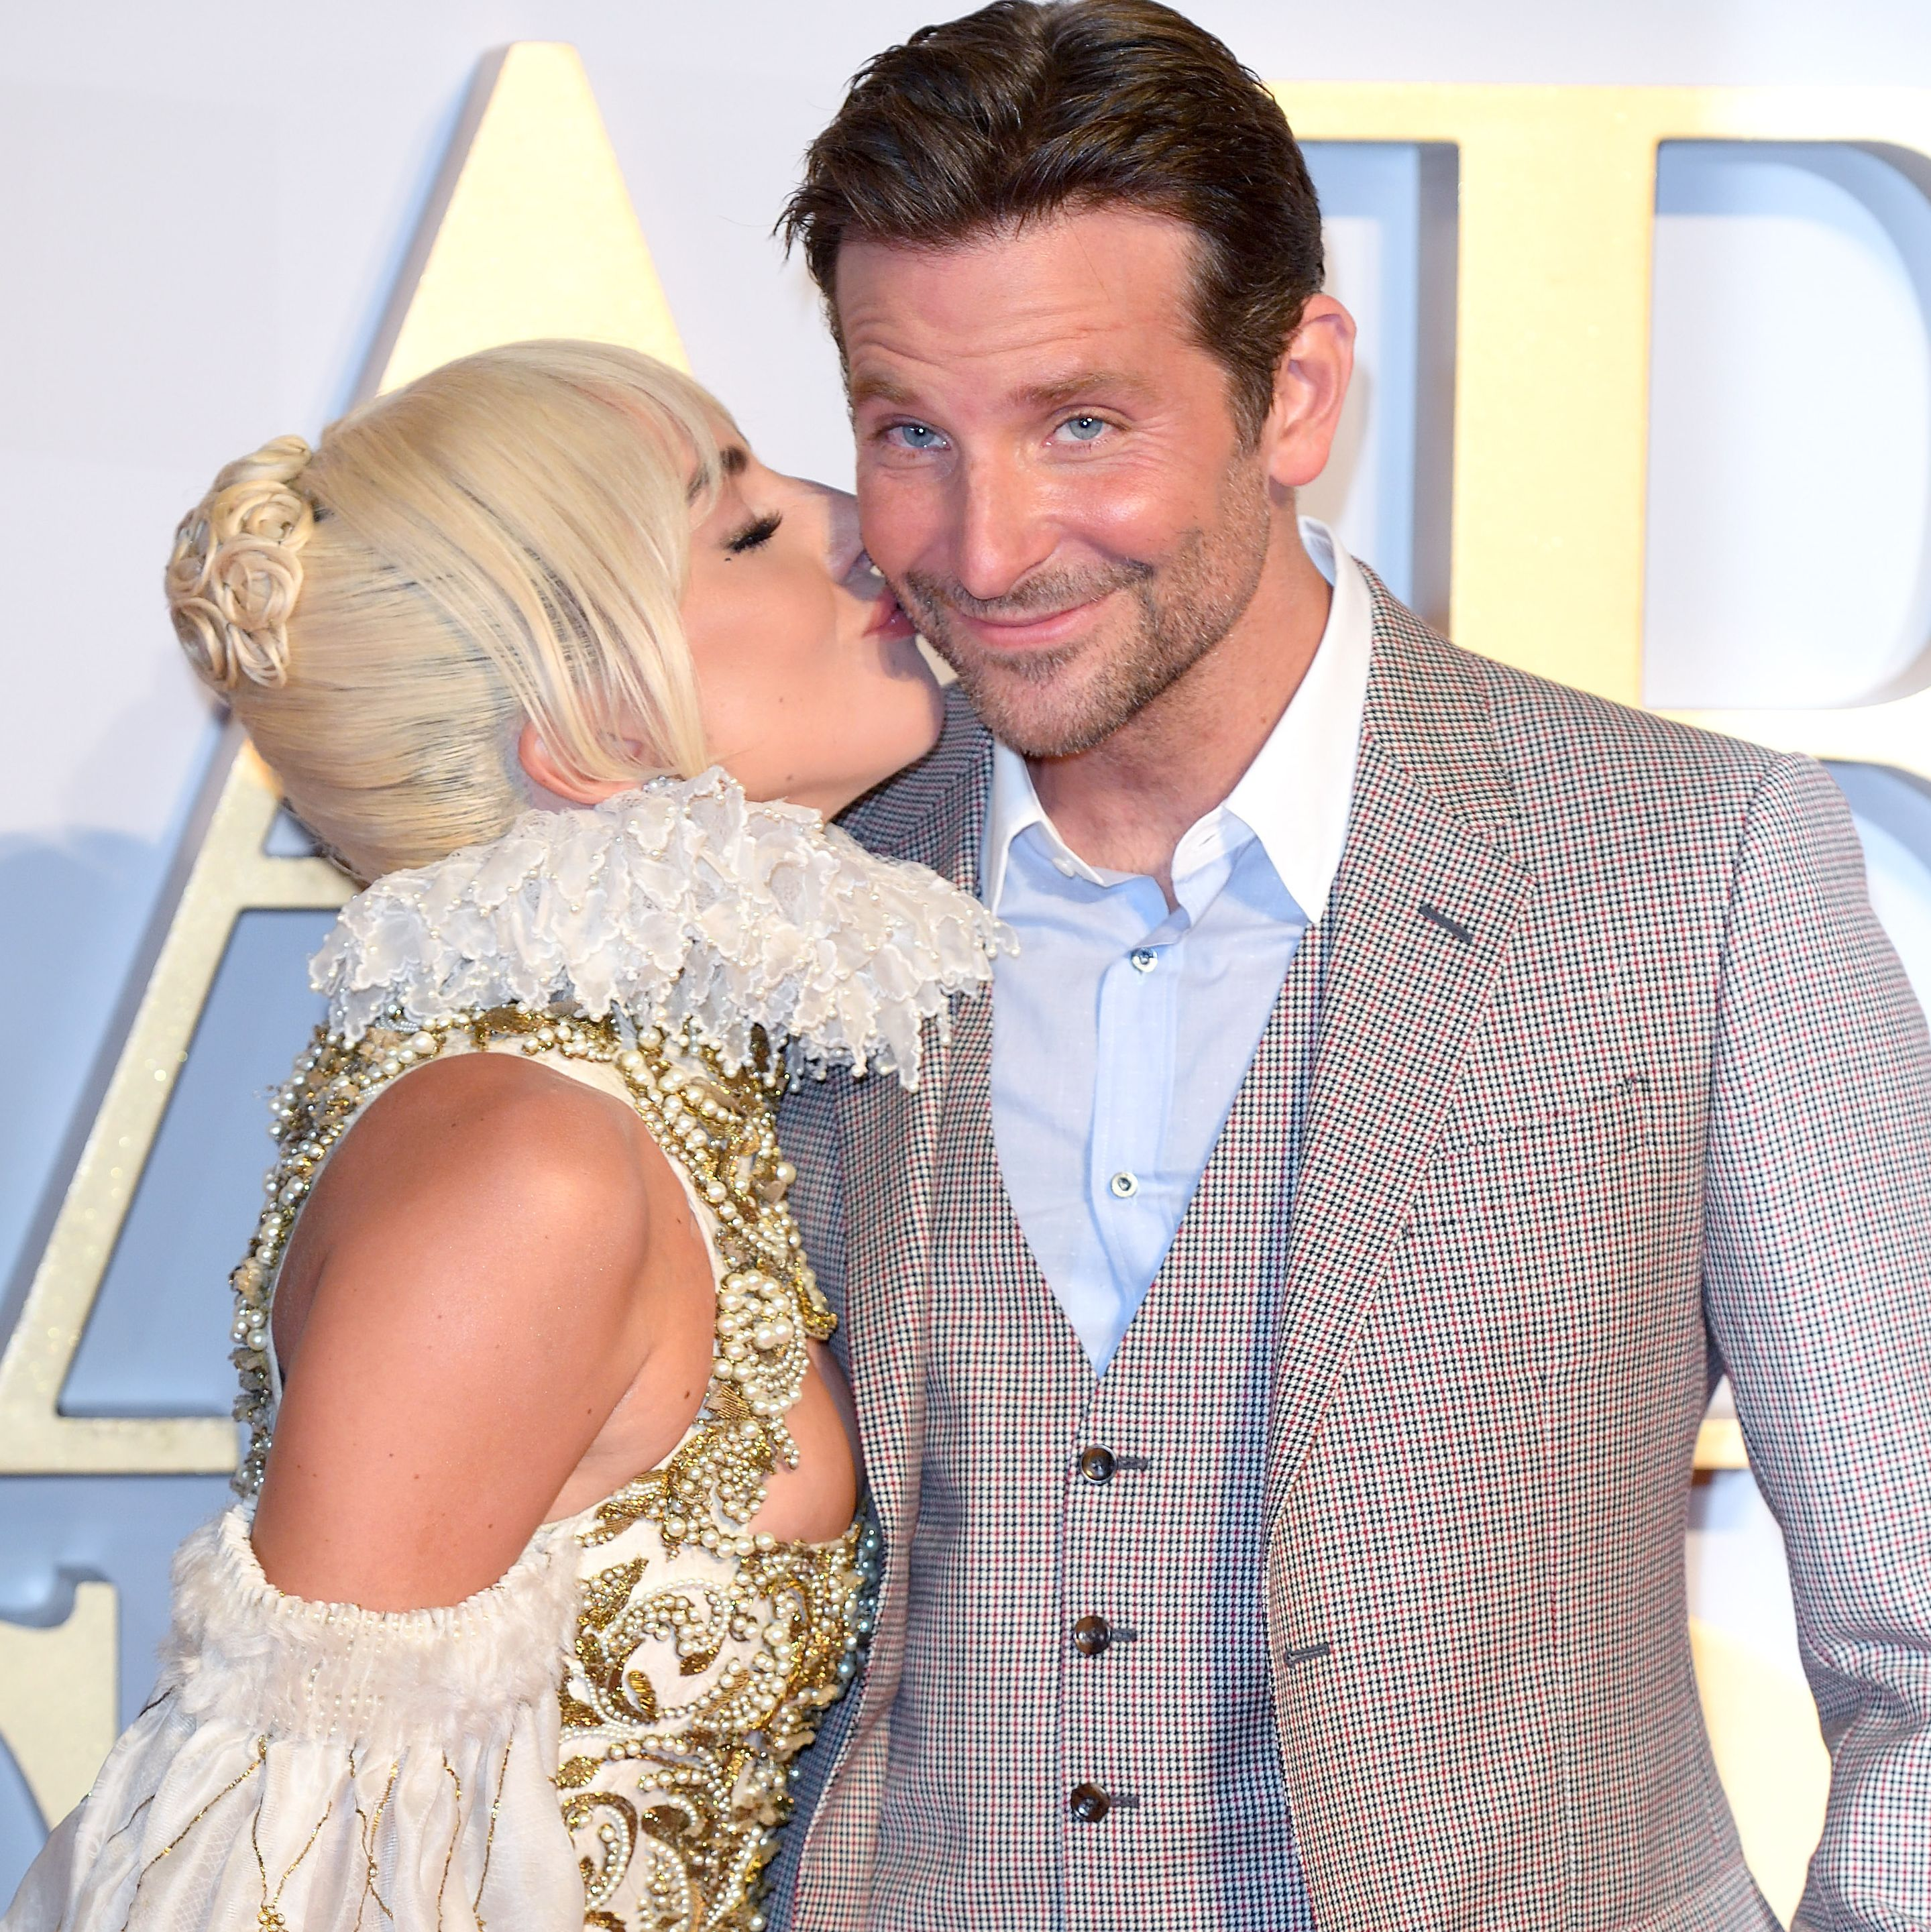 What's the Deal with Lady Gaga and Bradley Cooper's Relationship, Though?